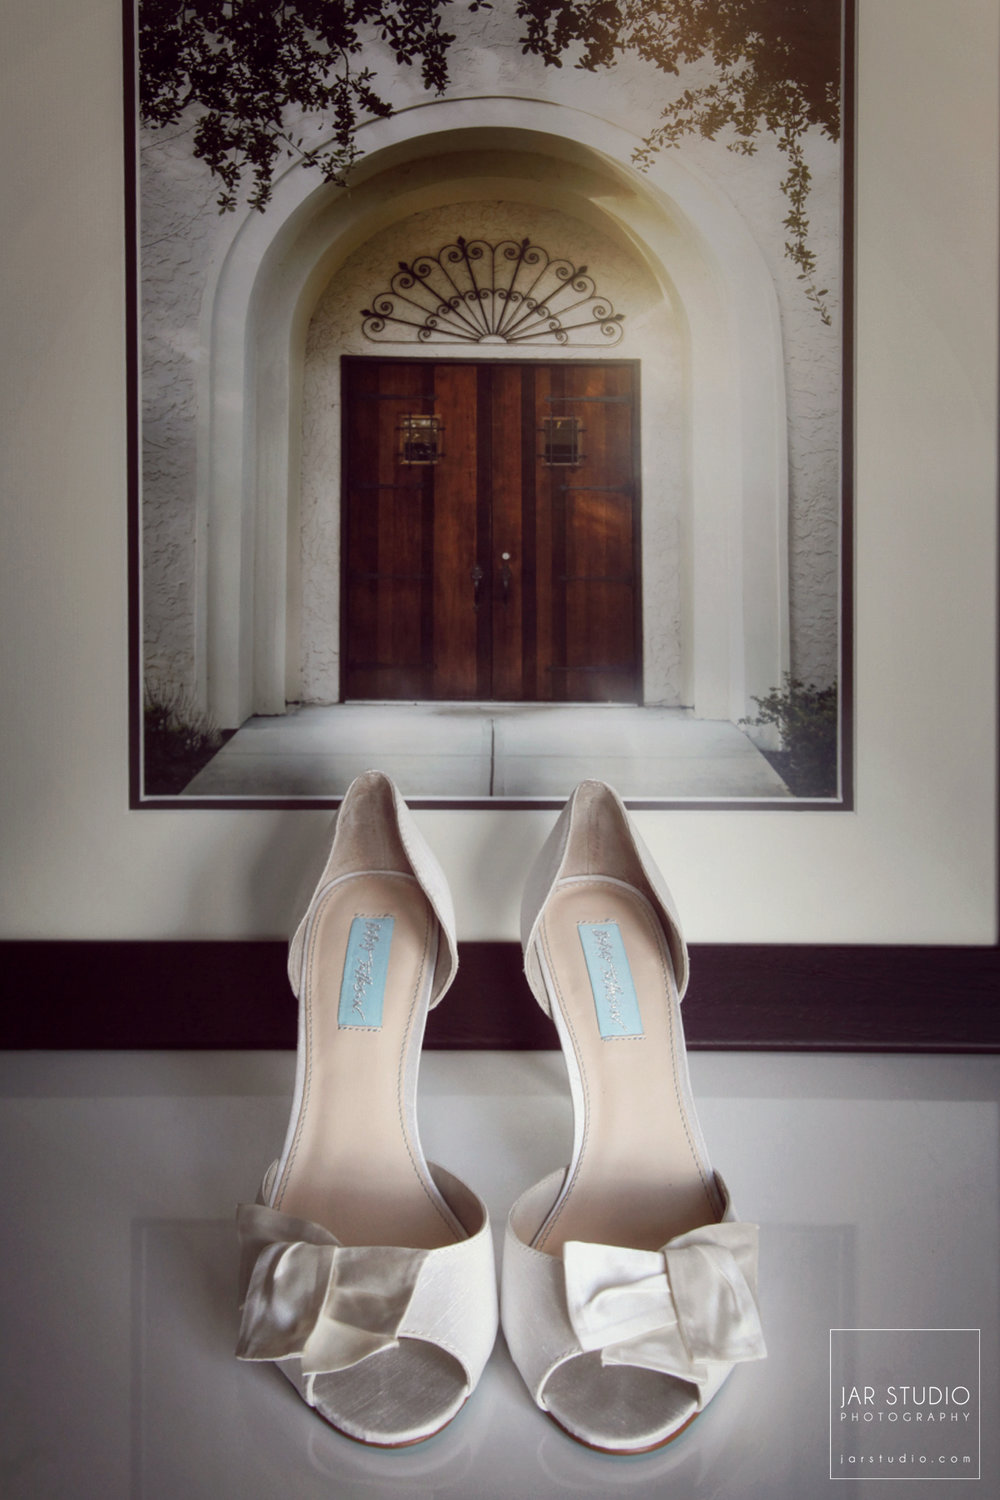 04-wedding-shoes-rollins-alfond-inn-jarstudio-photography.JPG